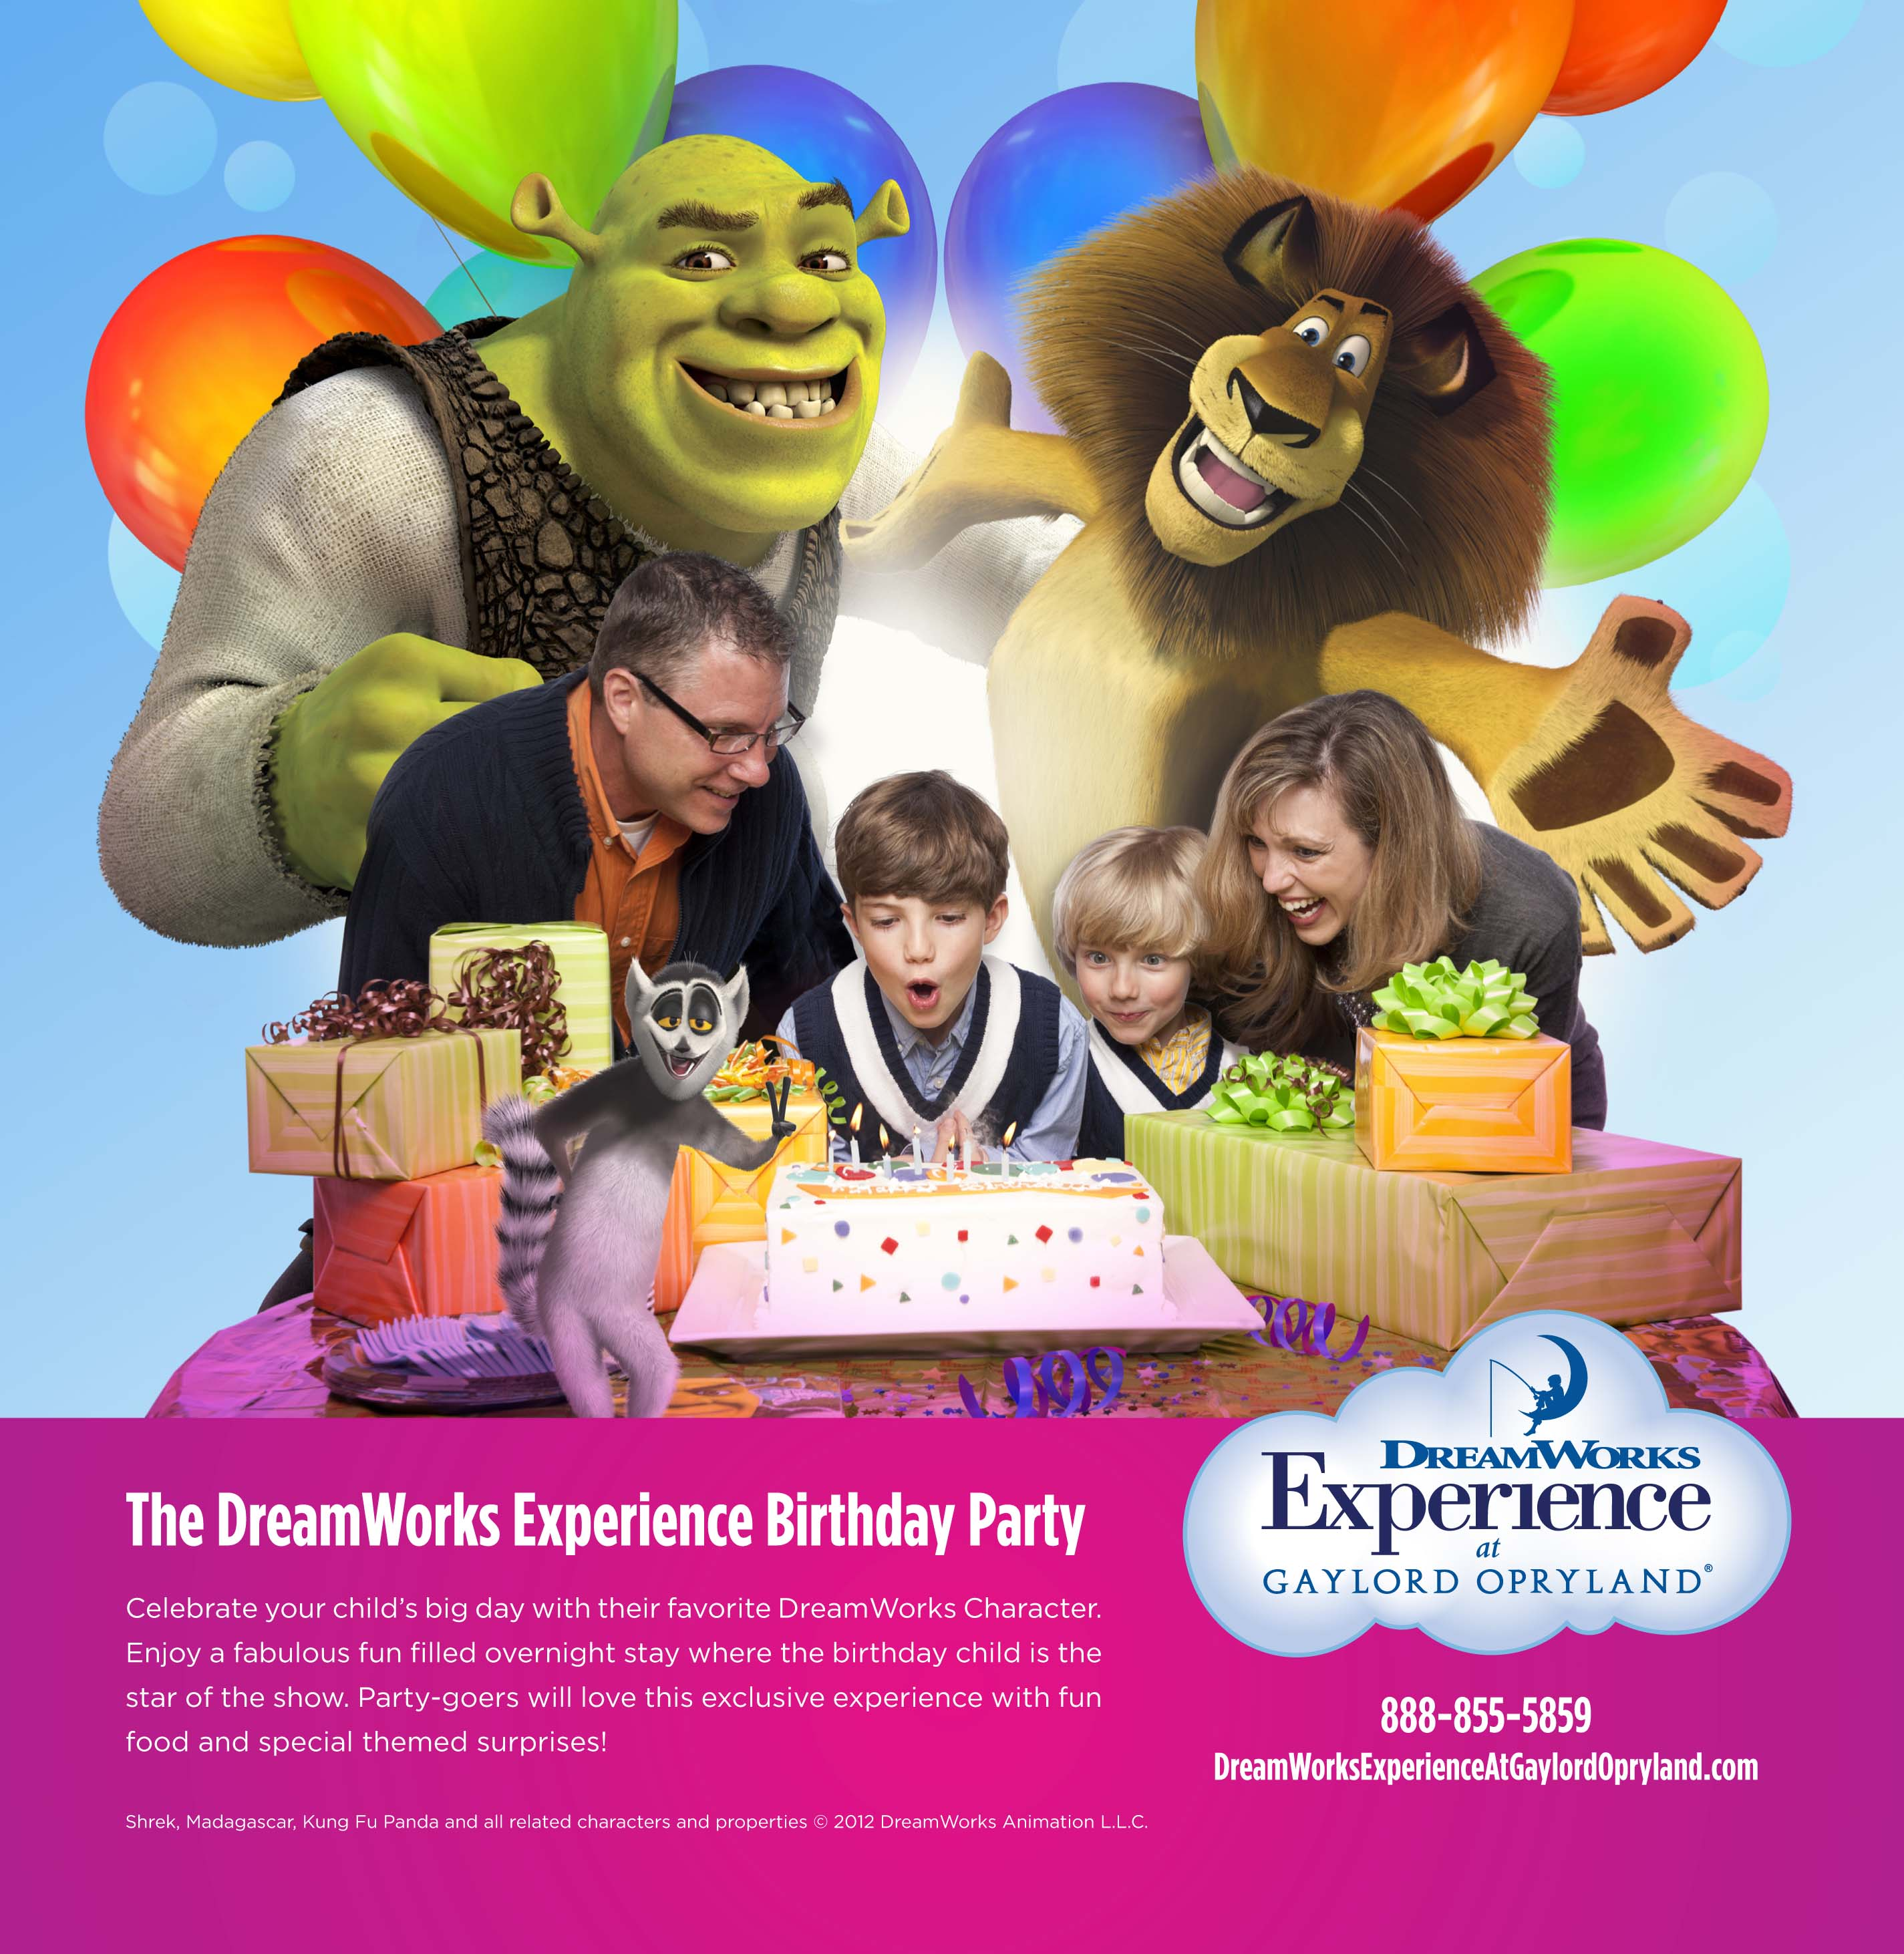 Gaylord Hotels Adds Character to Birthday Parties with The